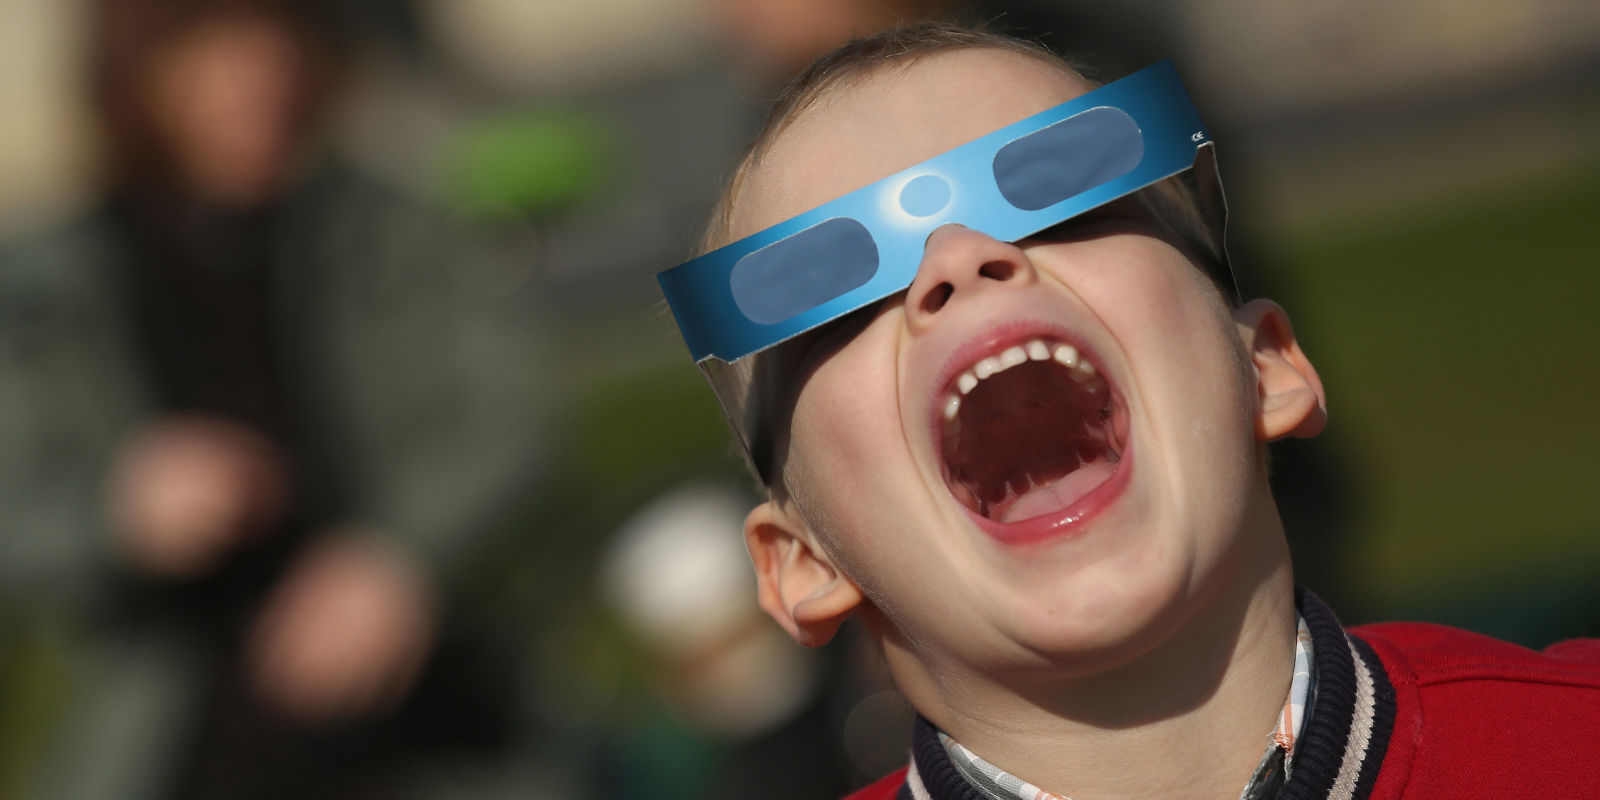 Solar Eclipse Glasses Scam How To Know If Your Eclipse